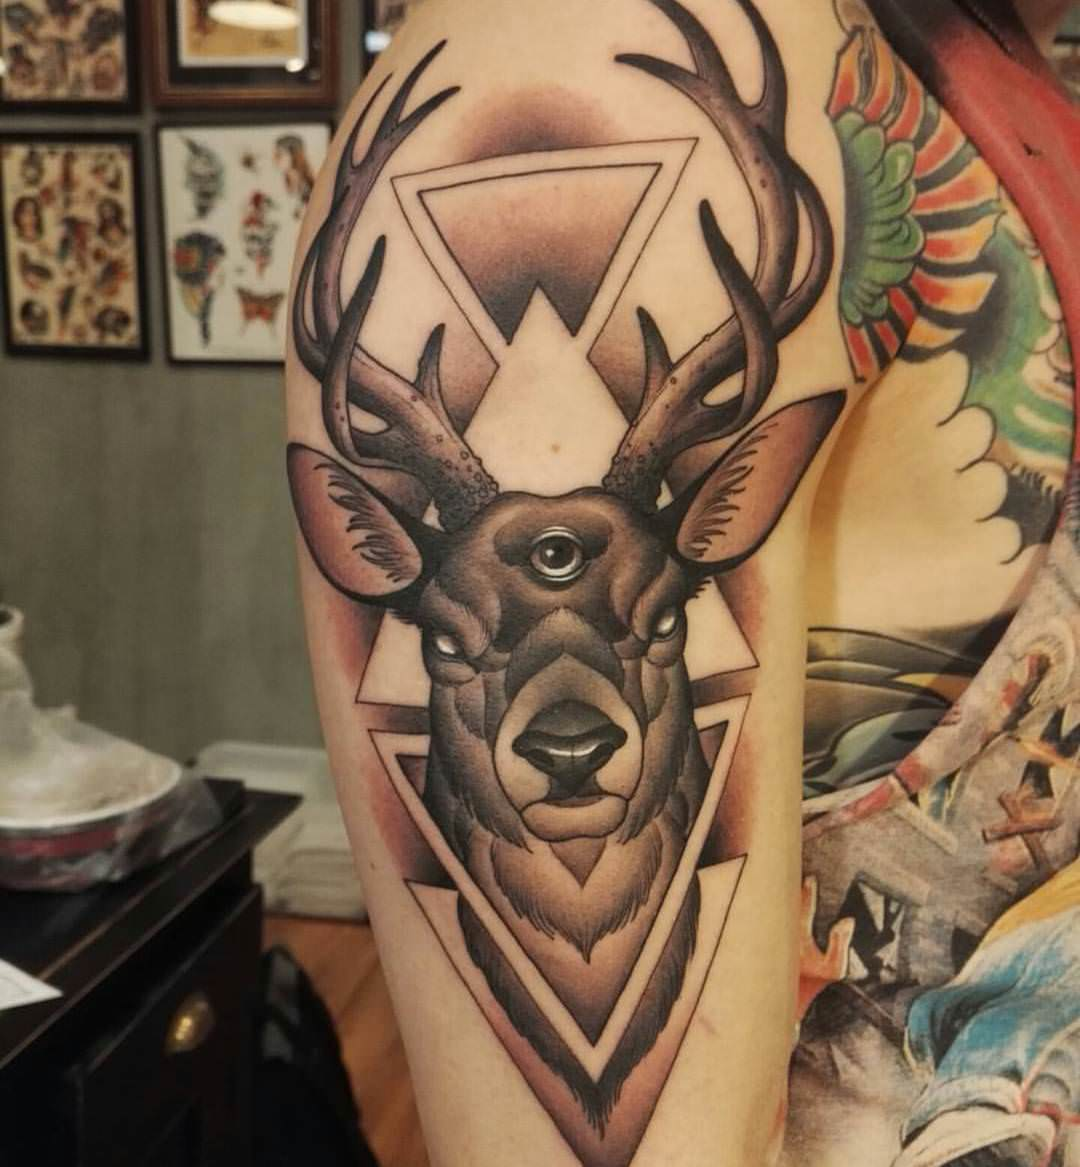 25+ Viking Tattoo Designs, Ideas | Design TrendsNorse Viking Tattoo Designs